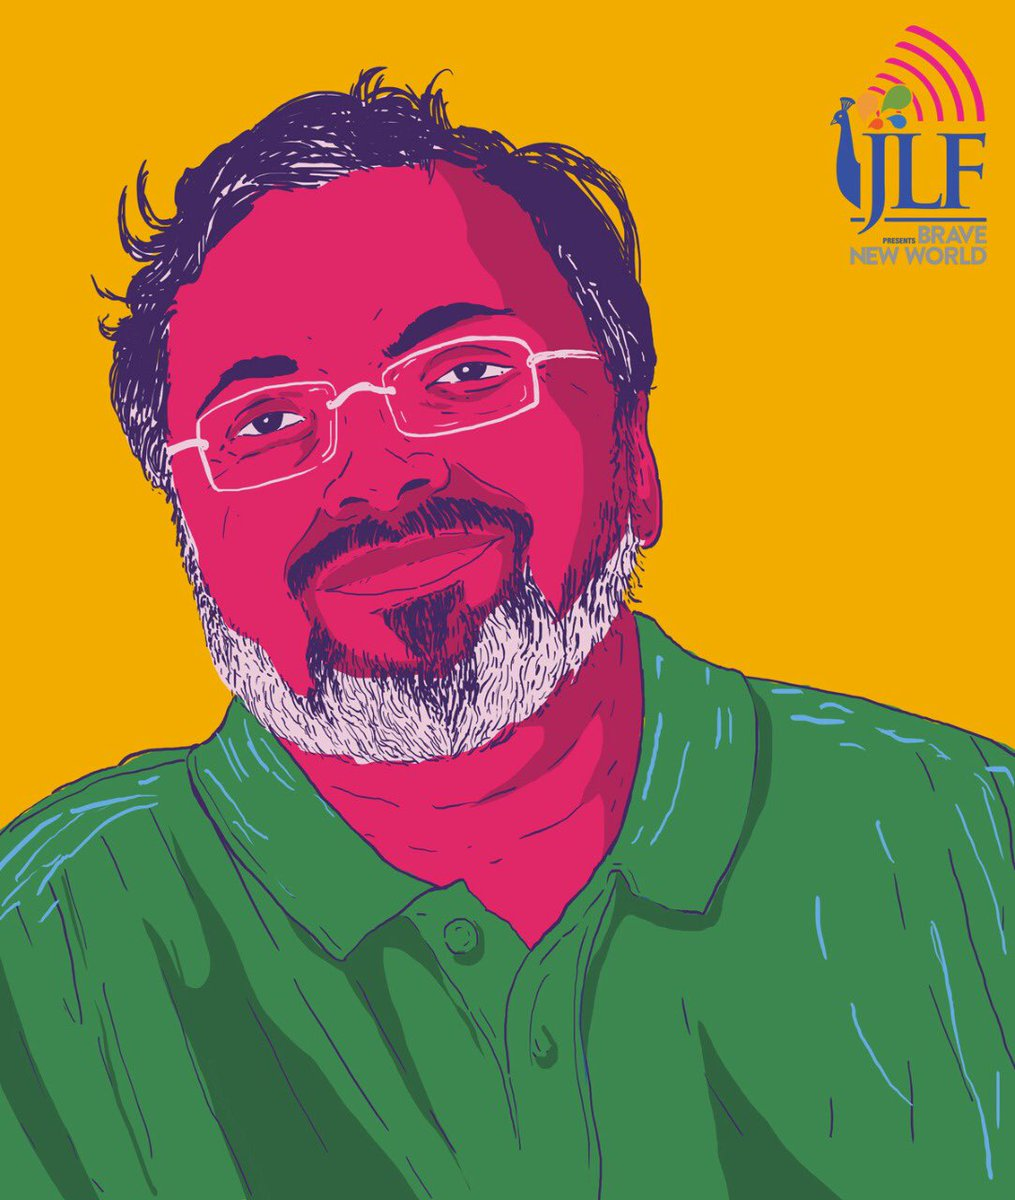 """""""Refusal to accept the flow of the world is the root of all misery."""" ― @devduttmyth, 'Jaya: An Illustrated Retelling of the Mahabharata'   Devdutt Pattanaik will be LIVE on #JLFBraveNewWorld tonight at 7 pm IST! https://t.co/IFipIE0vtE"""